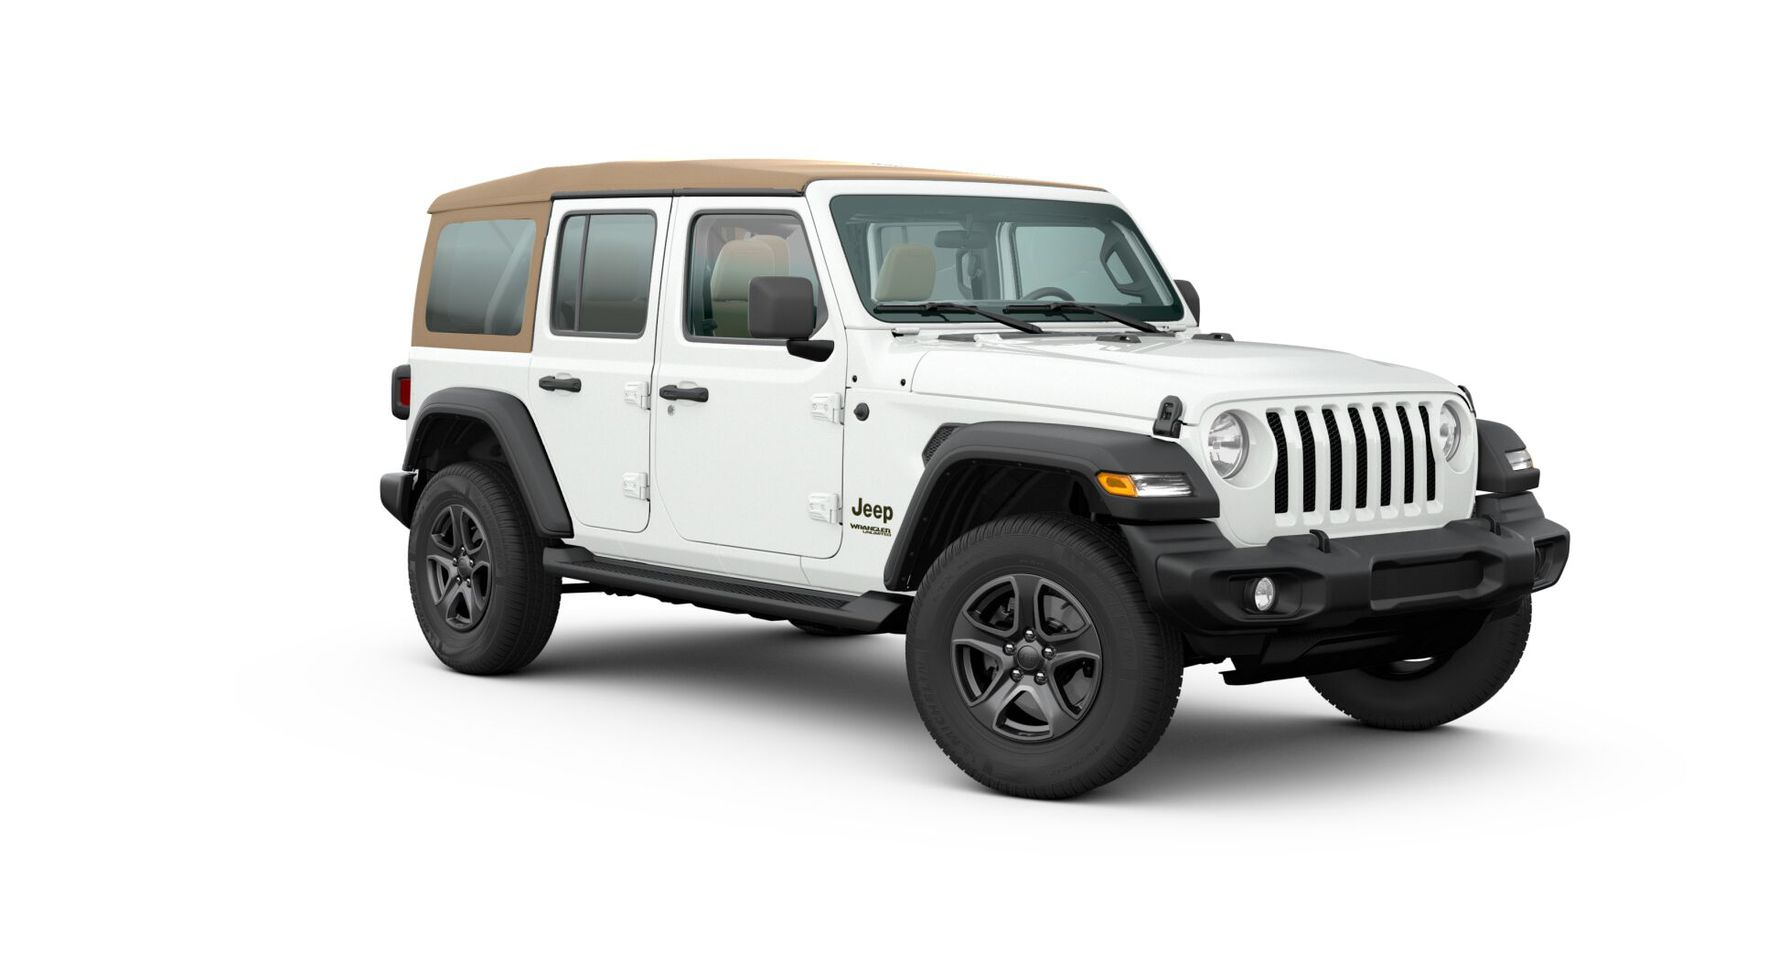 Jeep Wrangler 2020 Black and Tan